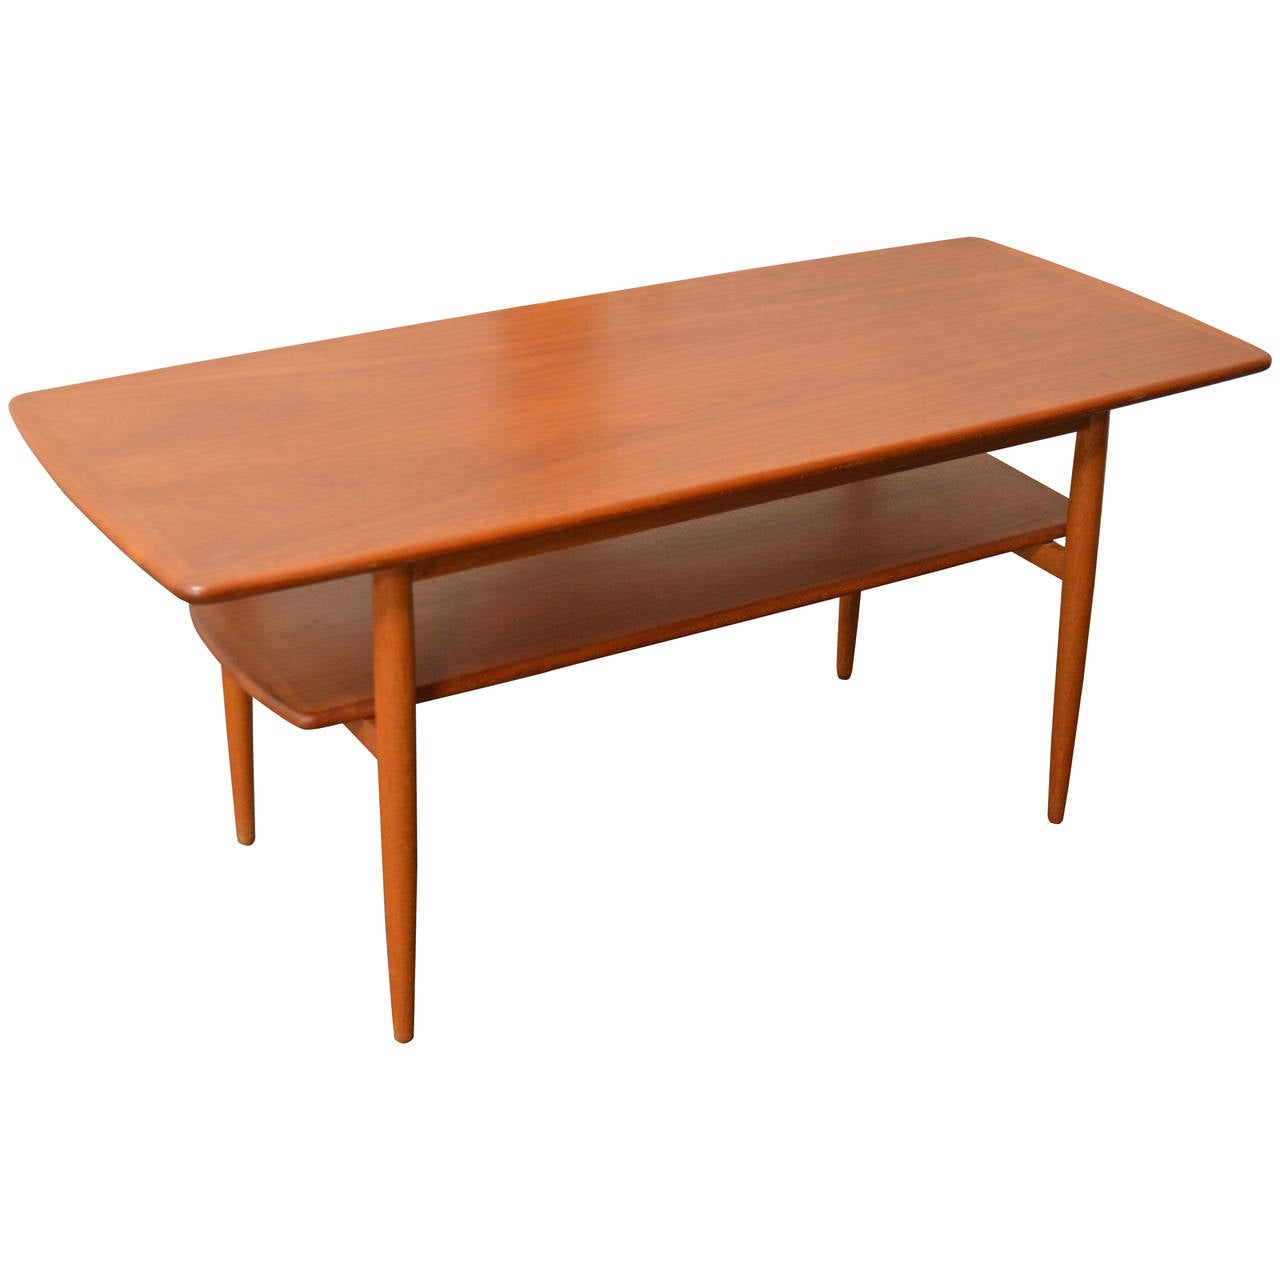 Mid Century Modern Swedish Teak Coffee Table With Shelf For Sale At 1stdibs